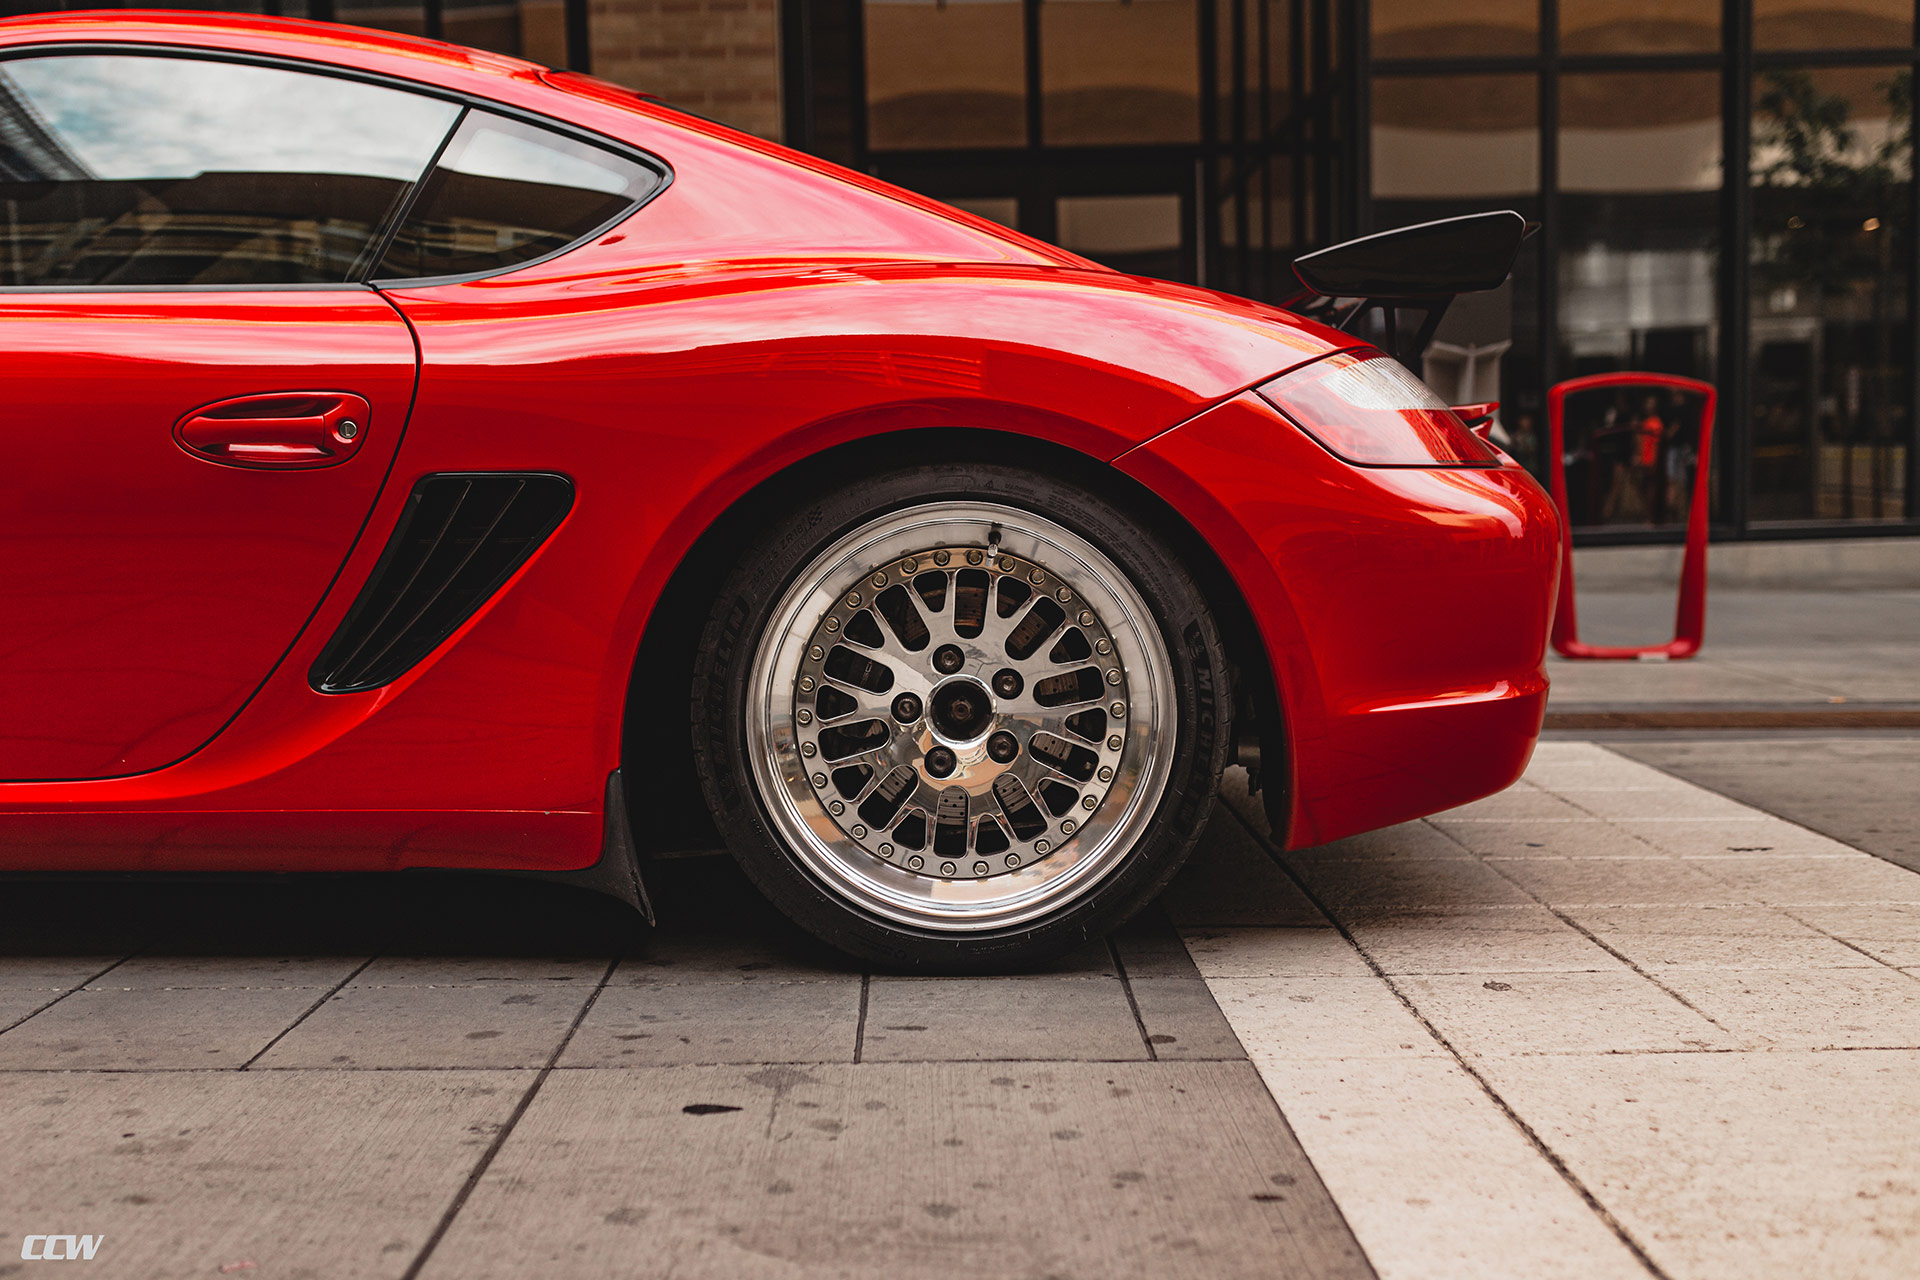 Red Porsche Cayman - CCW Classic Polished Wheels